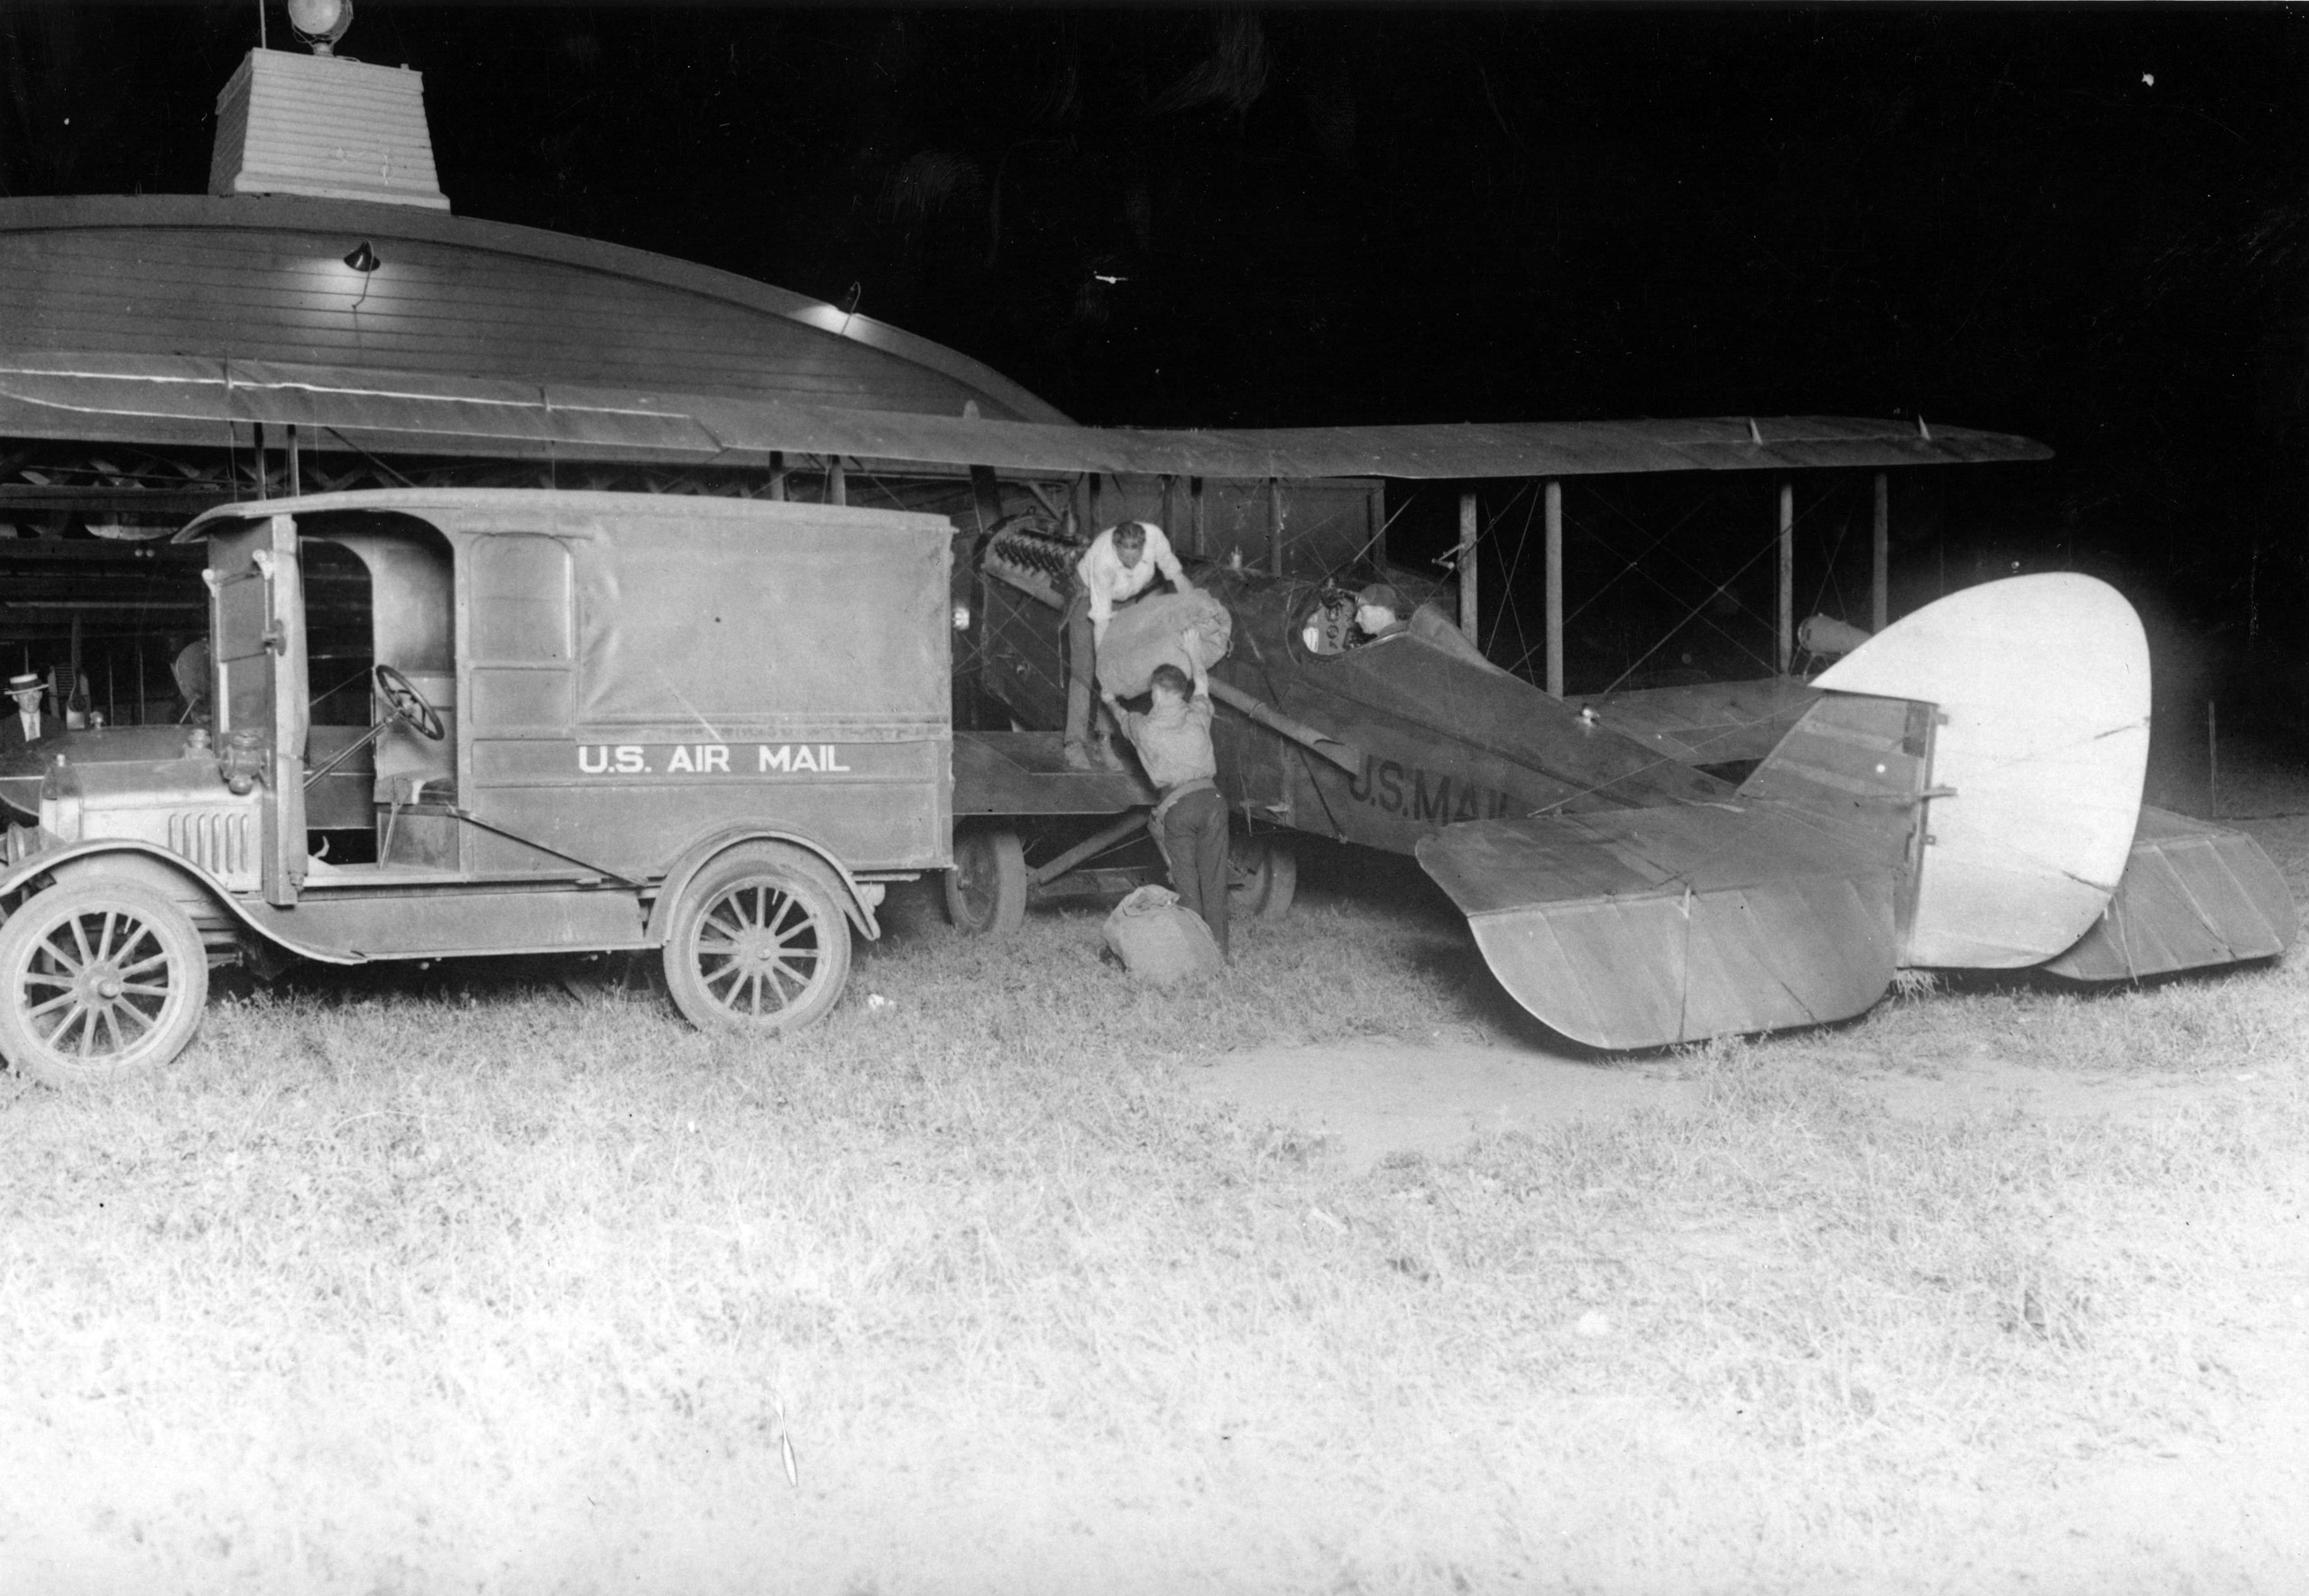 Postal employees loading mail into a de Havilland mail airplane at Hadley Field in New Brunswick, N.J. Transcontinental airmail service had begun in the summer of 1924 and was then extended to east coast with the completion of a series of airmail beacons that helped guide pilots across the country.